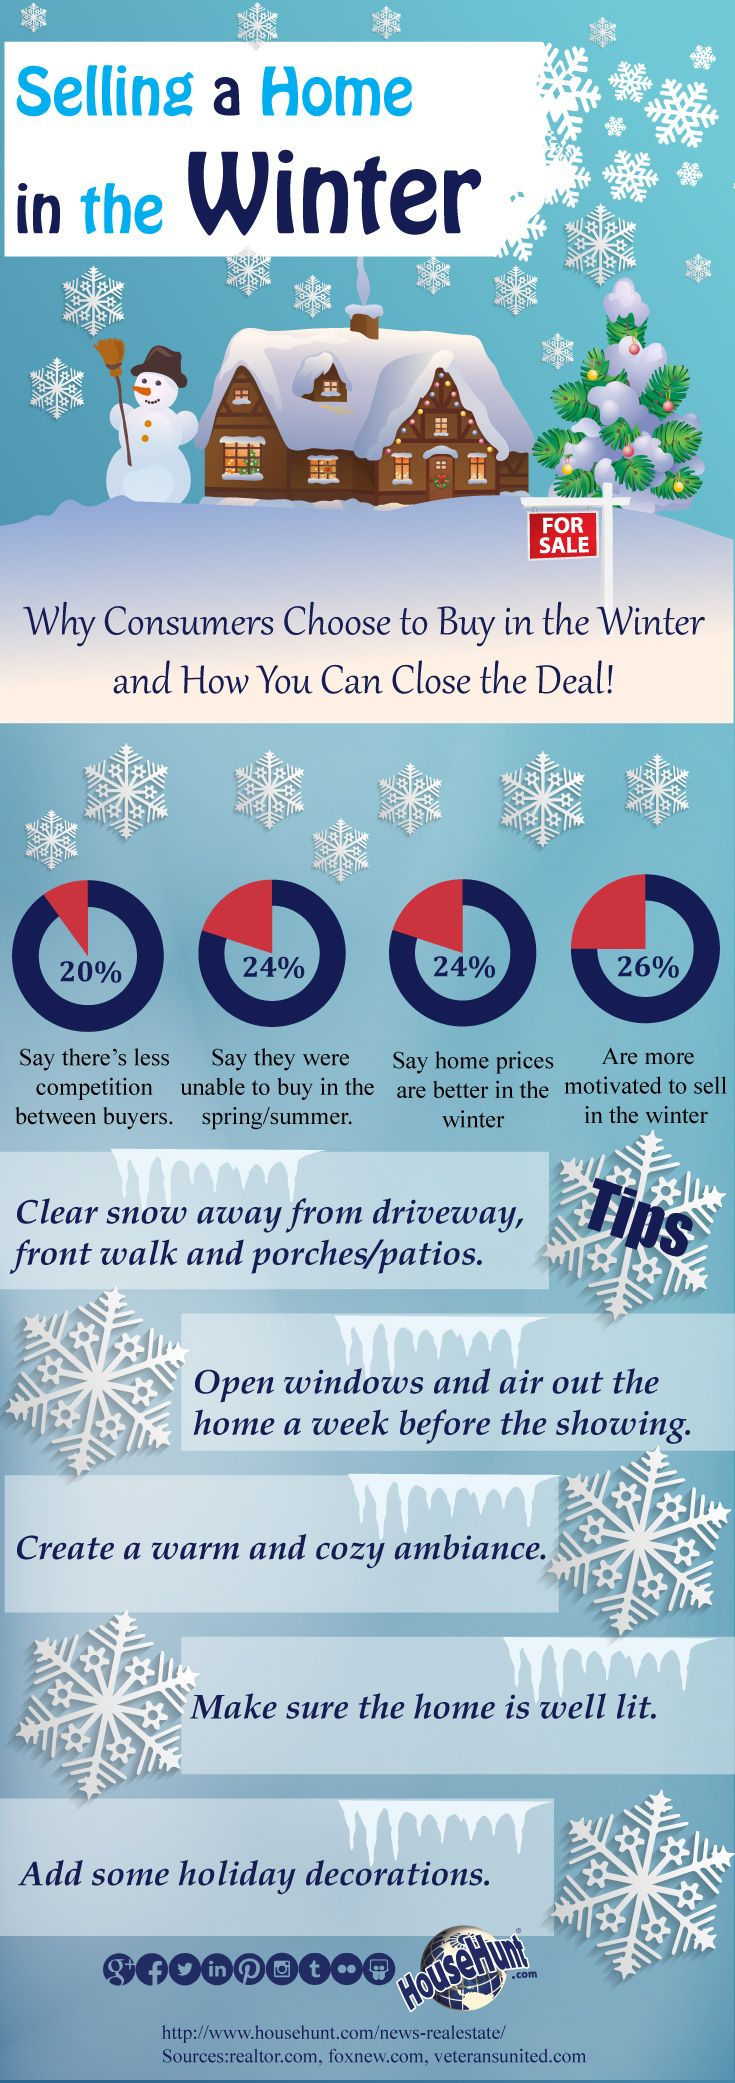 """How to sell a home in the Winter""! Selling a Home in the Winter [Infographic] #realestate #sellers #sellingahome"